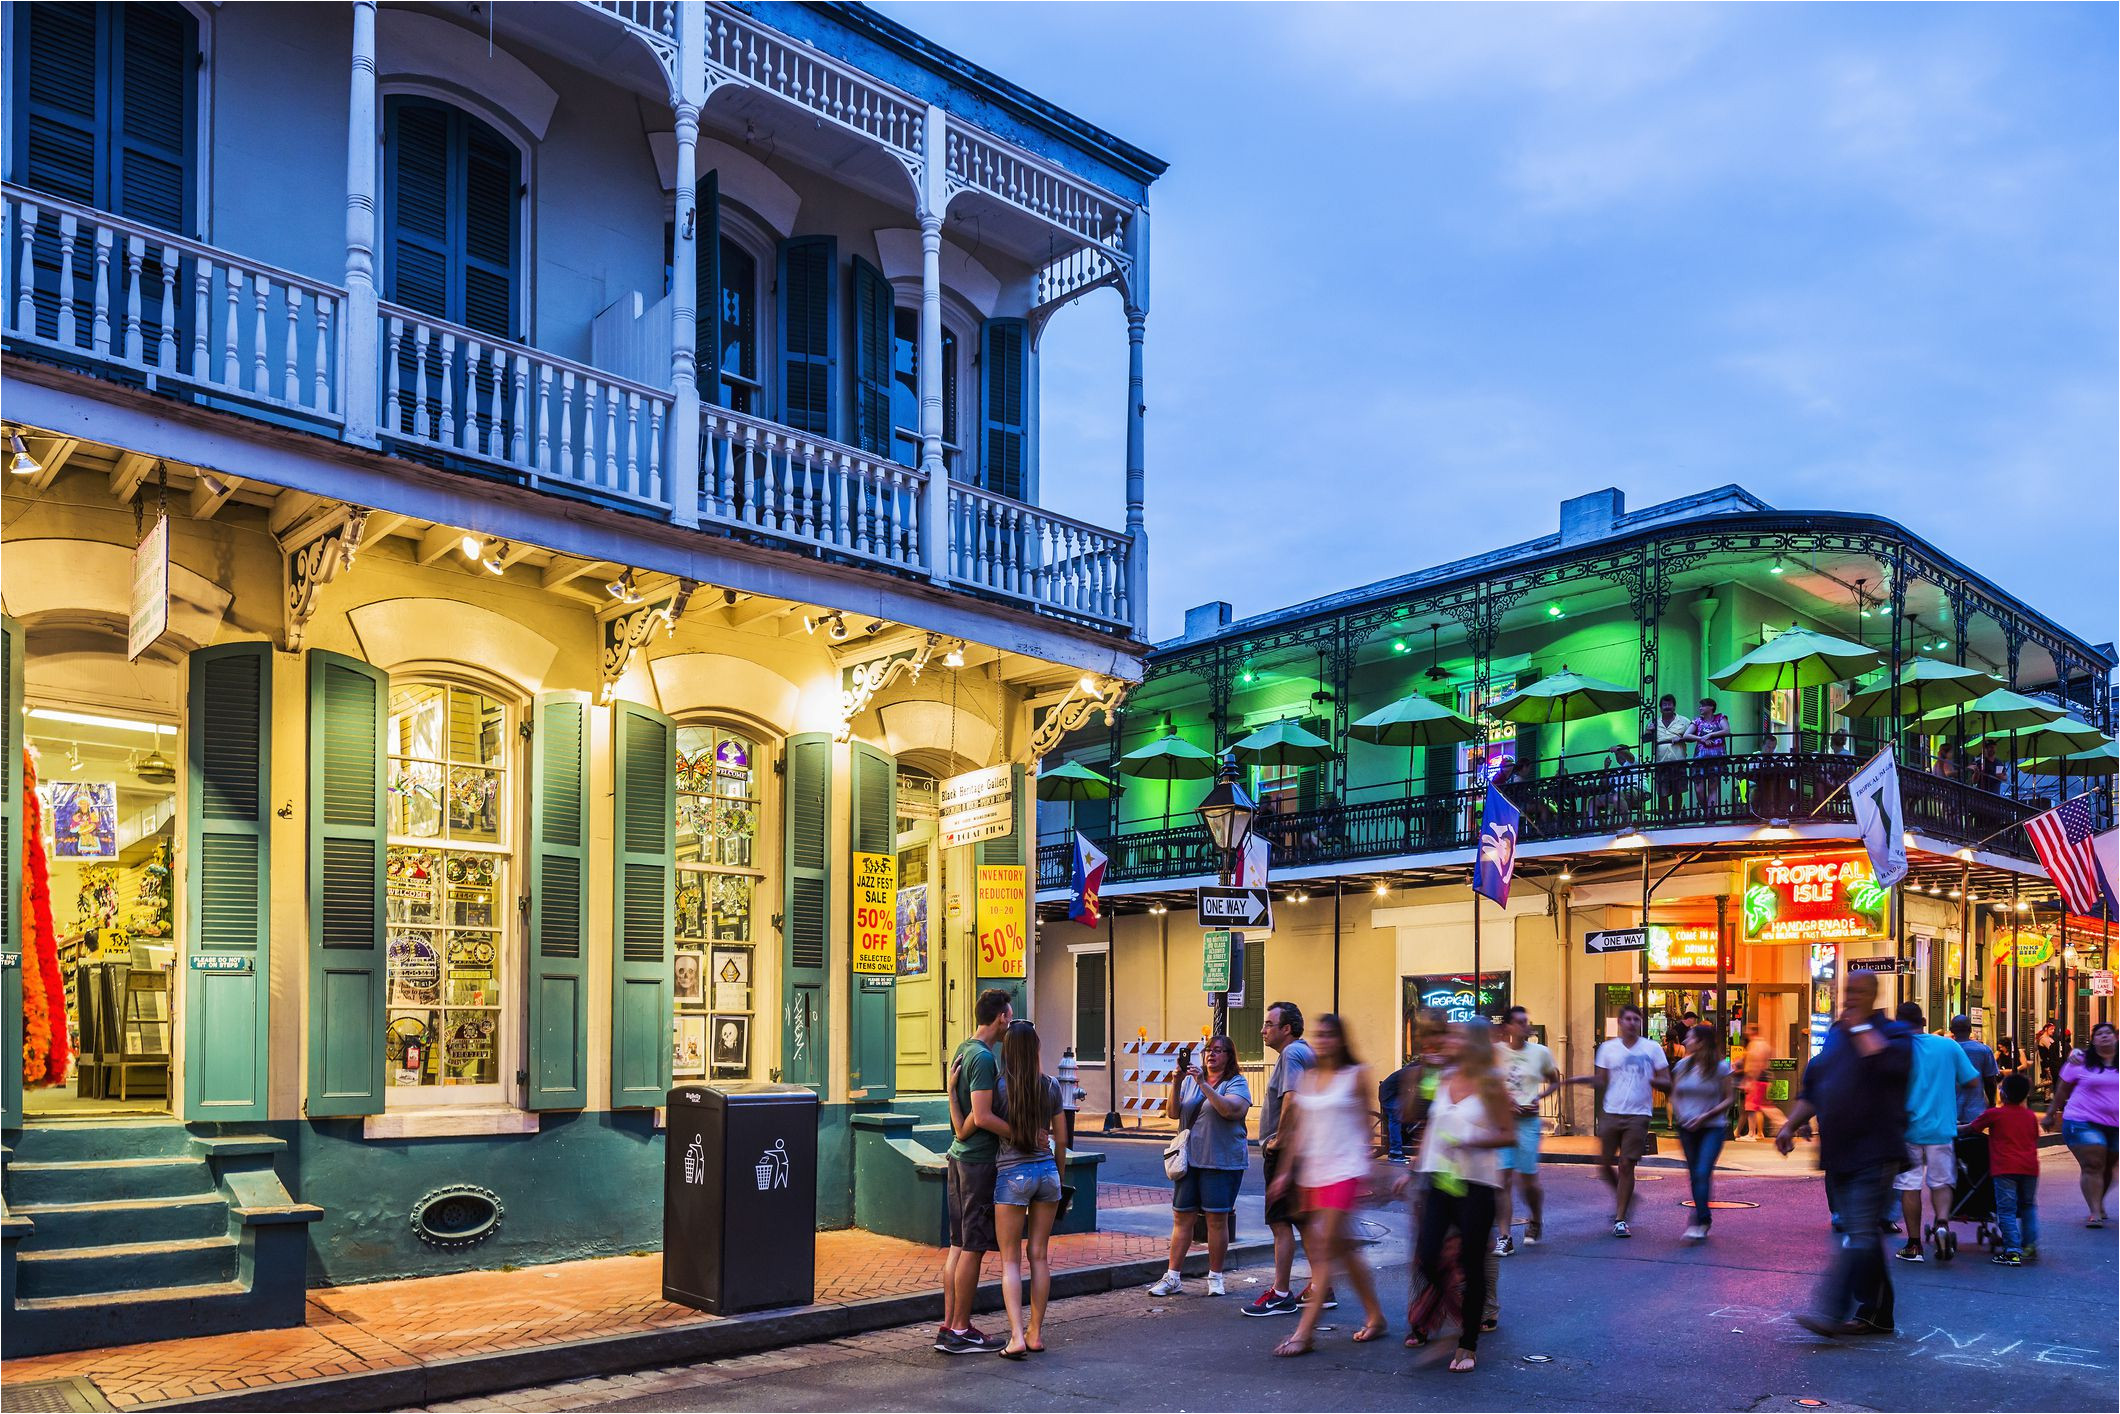 french quarter new orleans gettyimages 598270397 5744ba0c5f9b58723d21a29c jpg